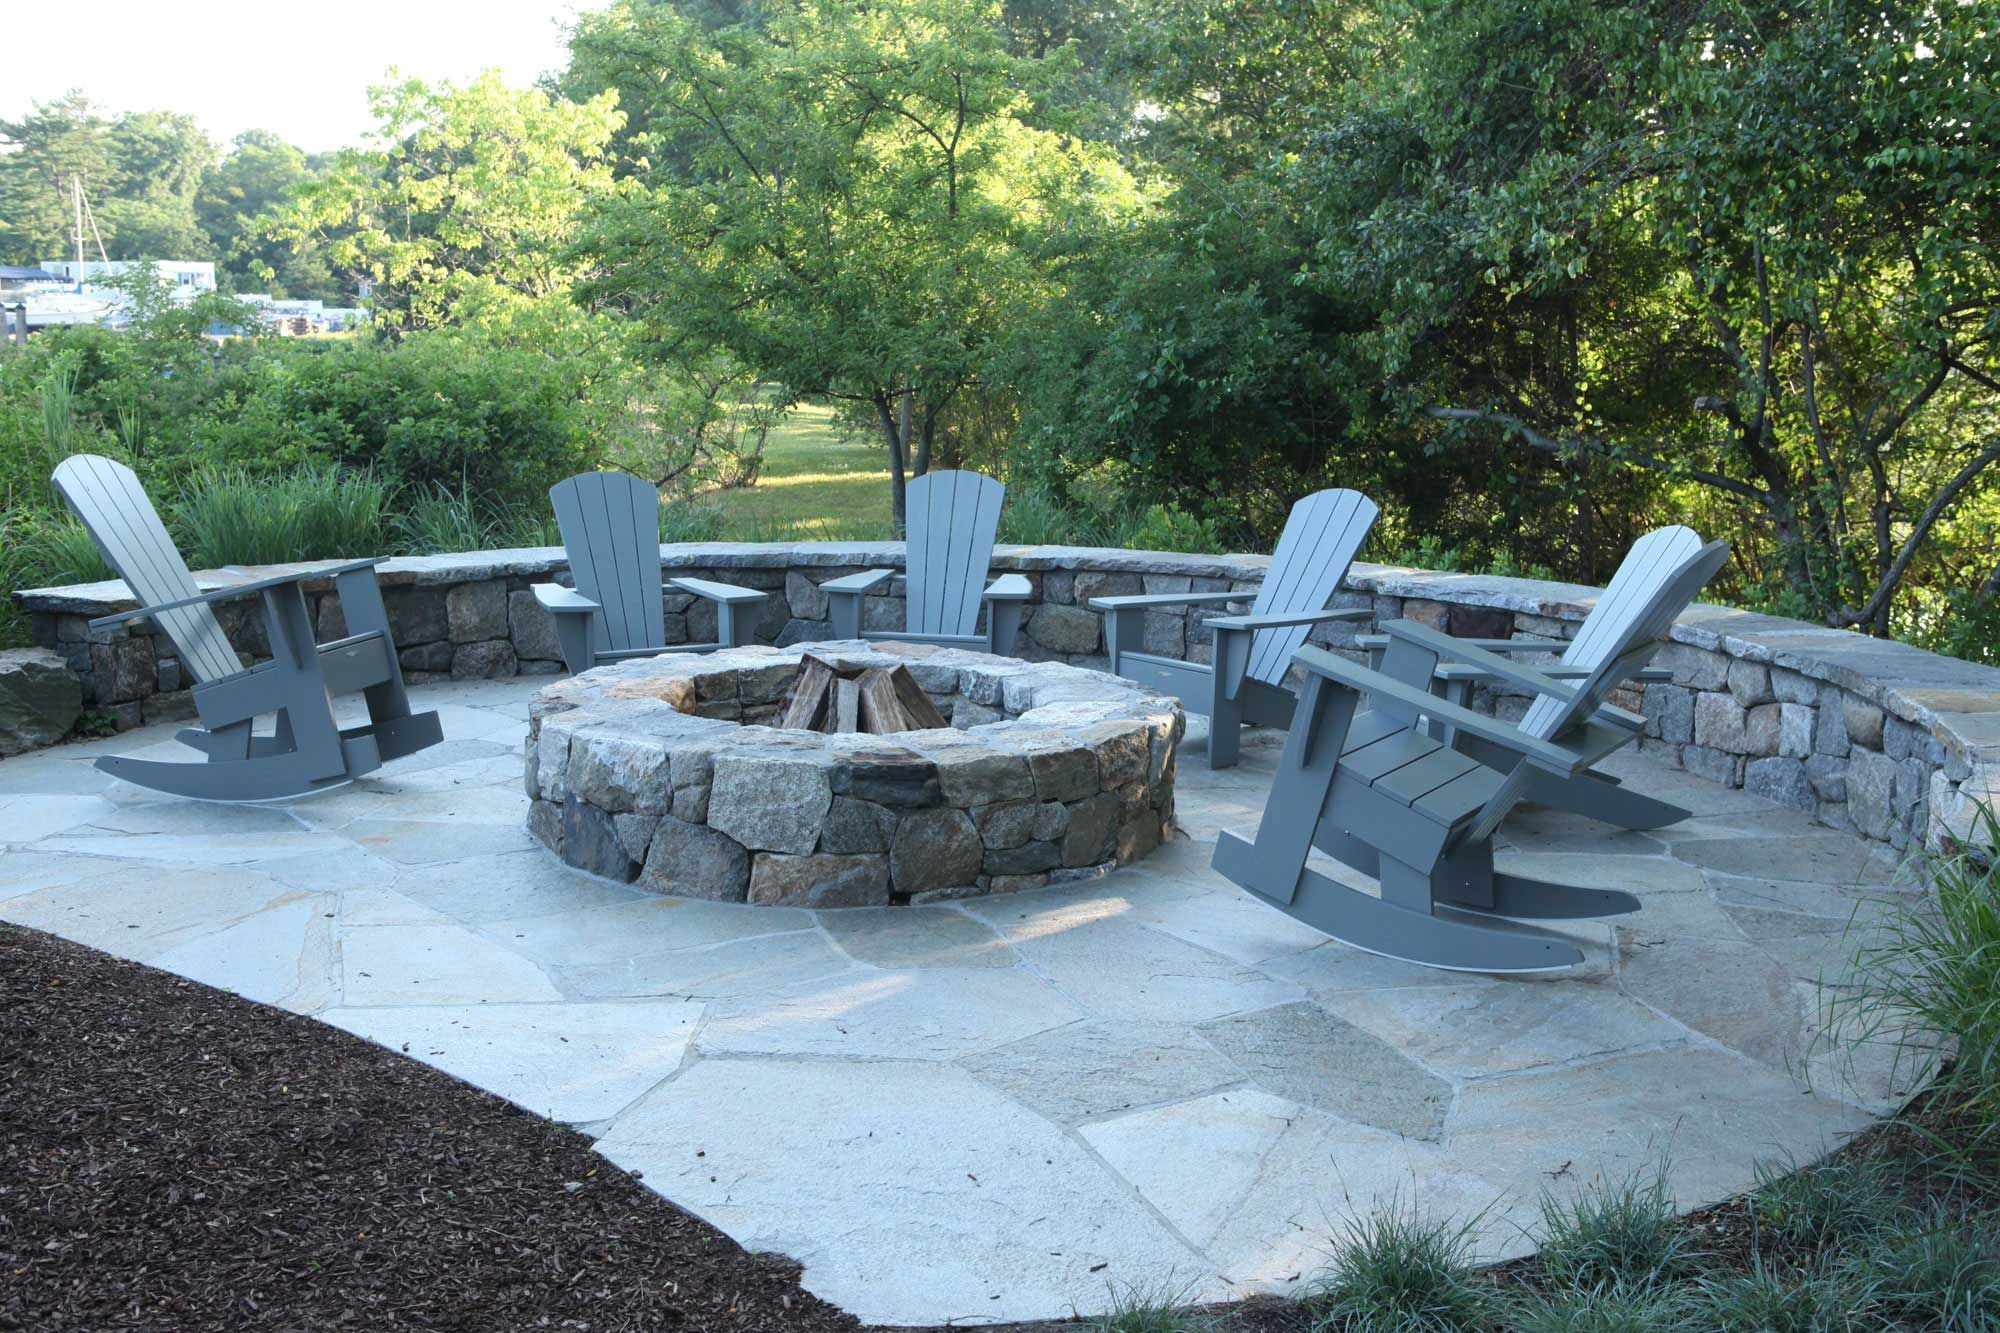 Stone Fire Pit Designs Part - 29: Relaxing Outdoor Living Using Stylish Fire Pits Design: Backyard Landscape  Ideas With Stone Pavers And Firepits Also Adirondack Shairs